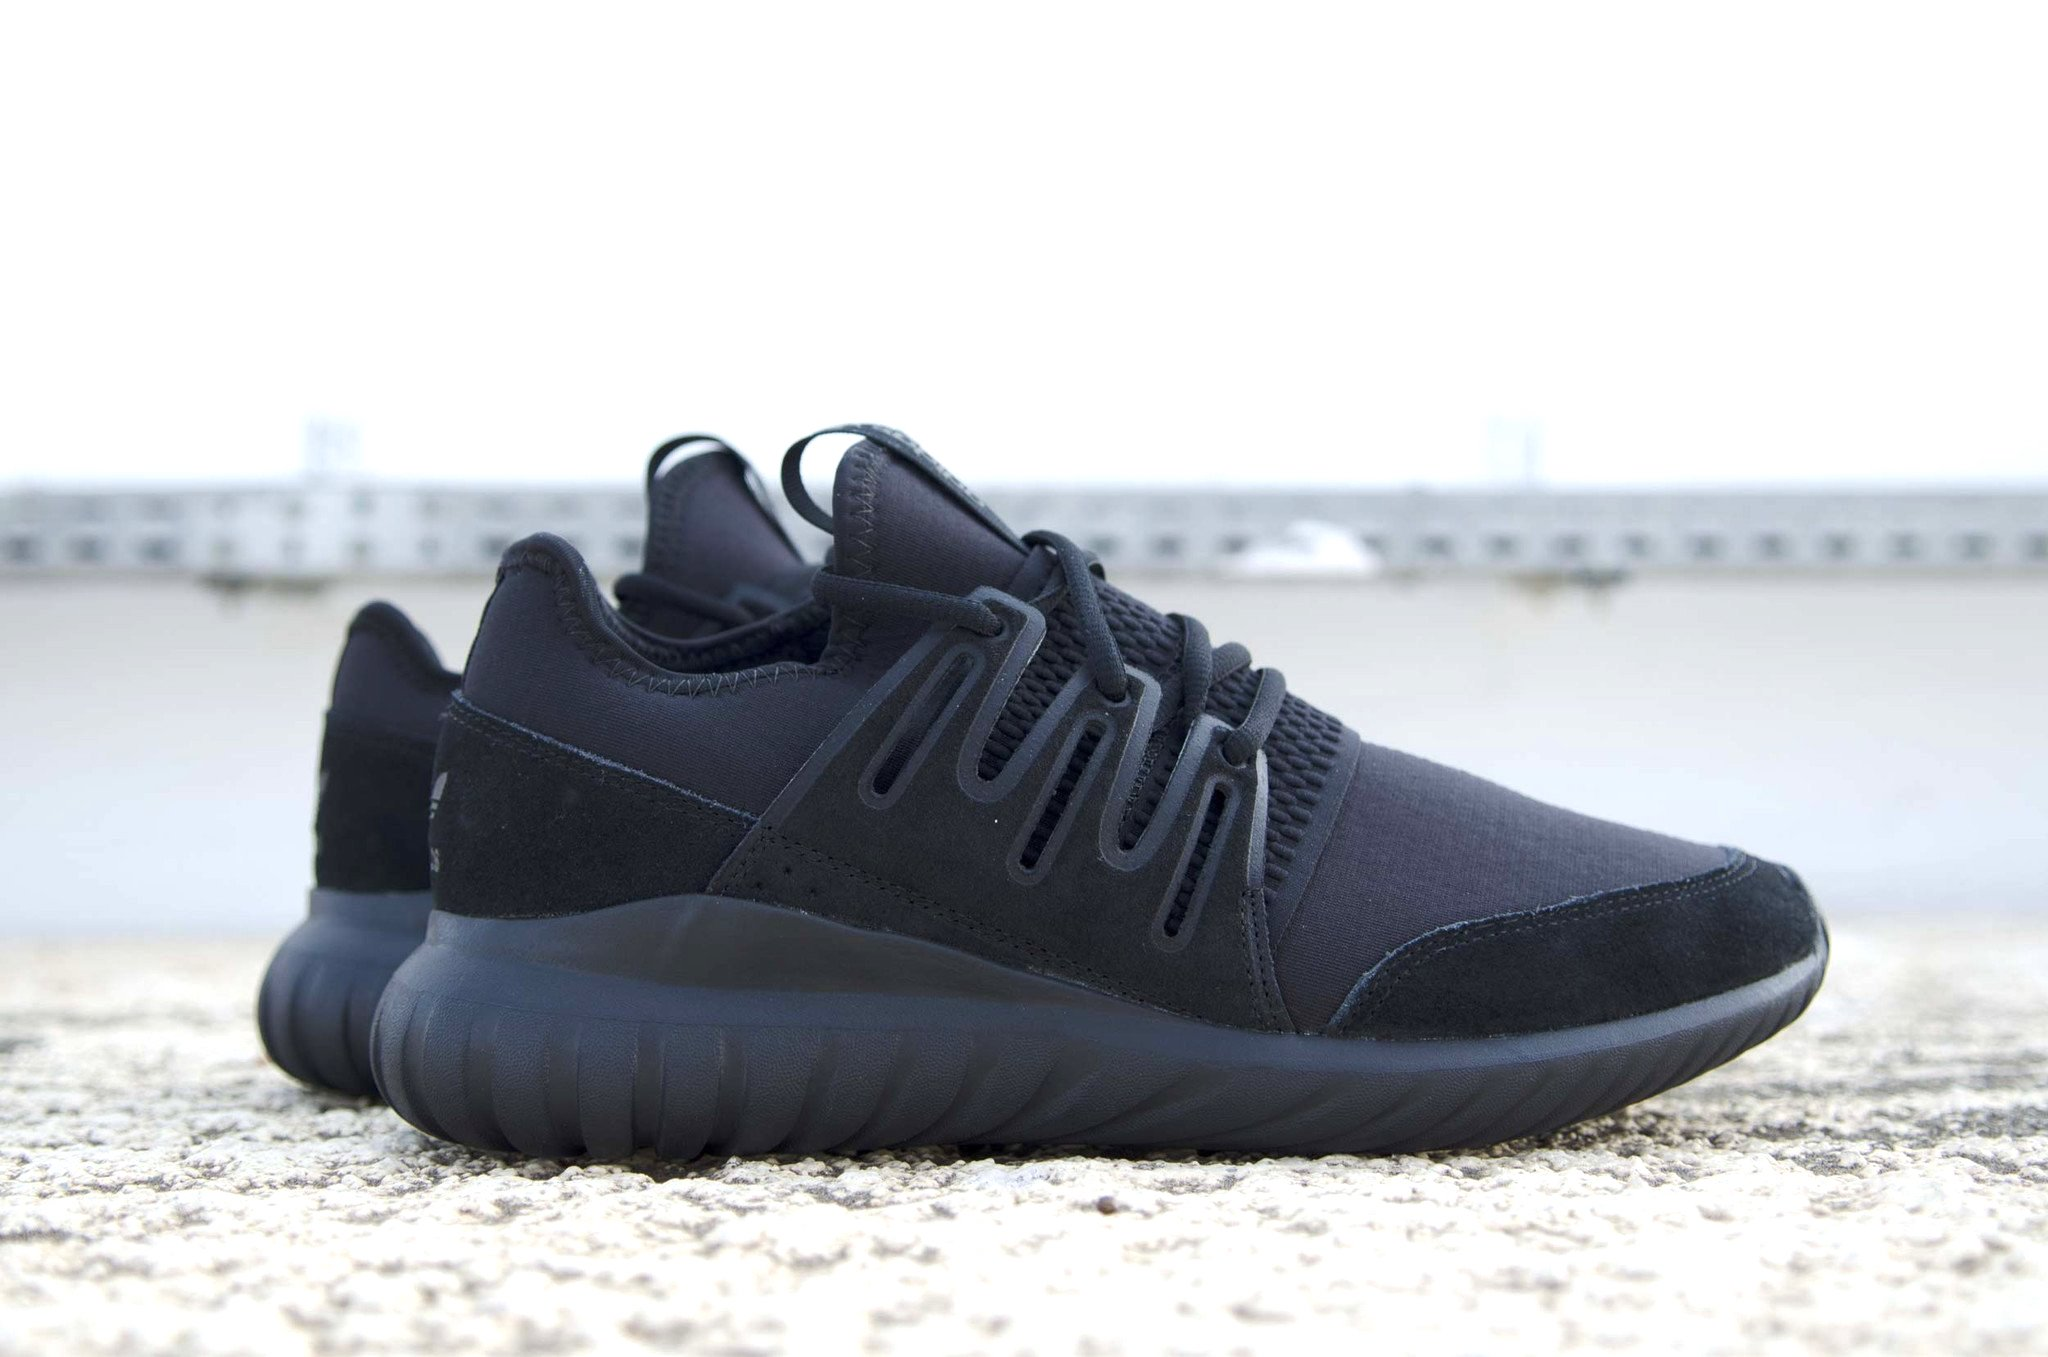 free shipping 55773 83358 adidas Tubular Radial Triple Black Sale $79.98 - Soleracks